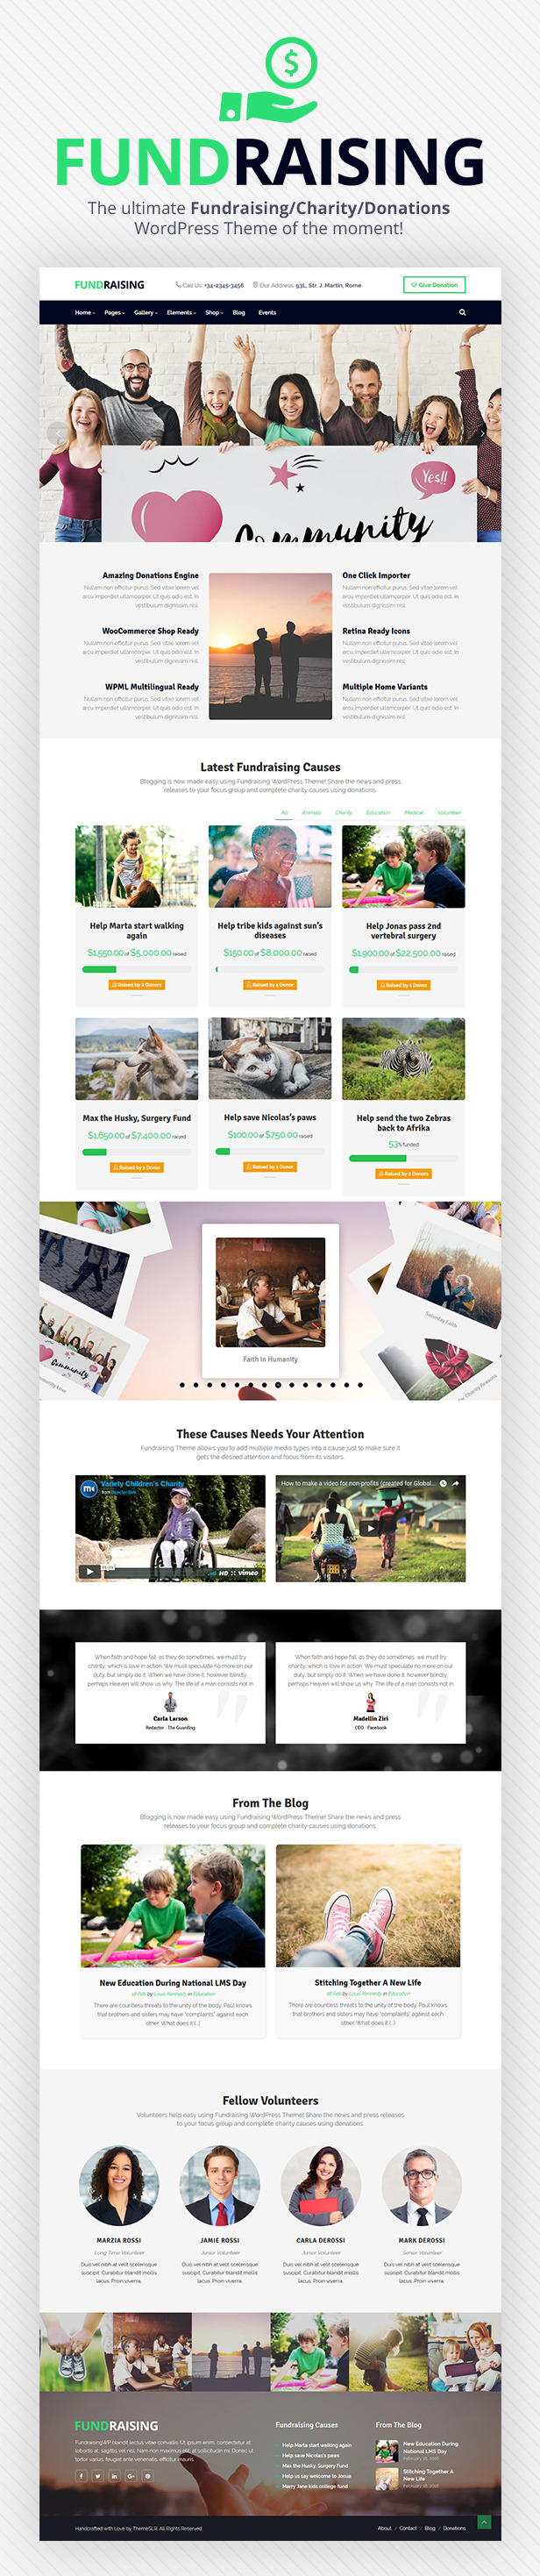 Fundraising - Charity/Donations WordPress Theme - 2